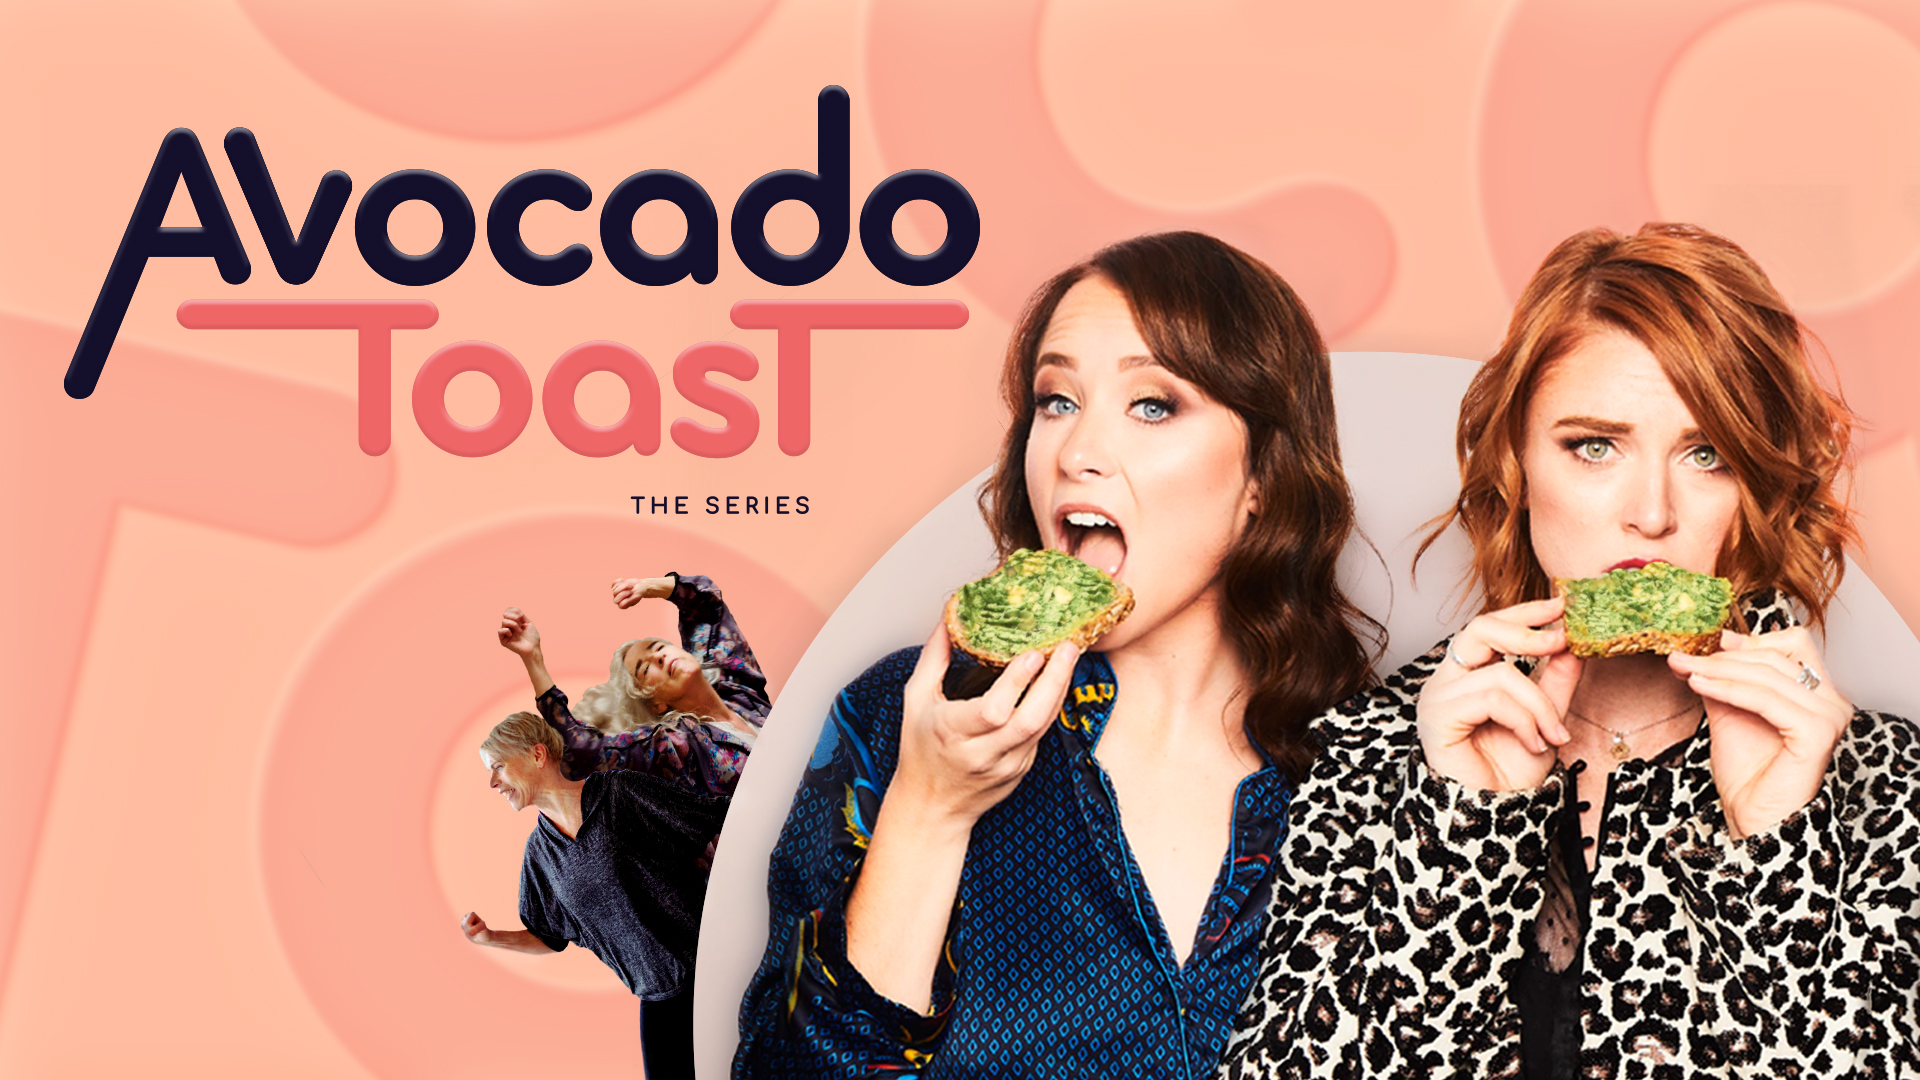 Avocado Toast the series - Season 1